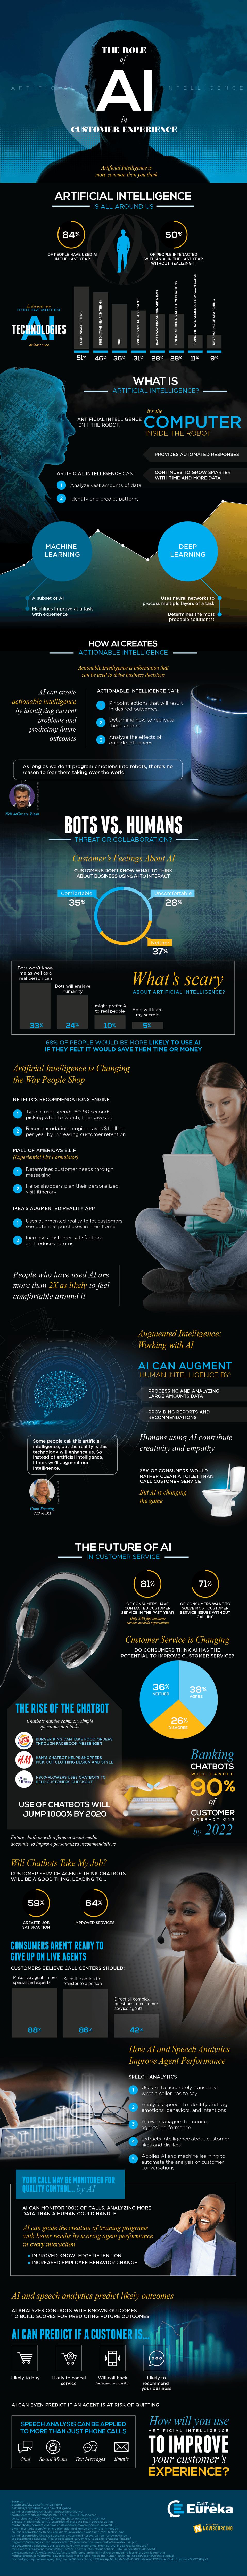 Can Artificial Intelligence Enhance Customer Service Efforts? [Infographic]